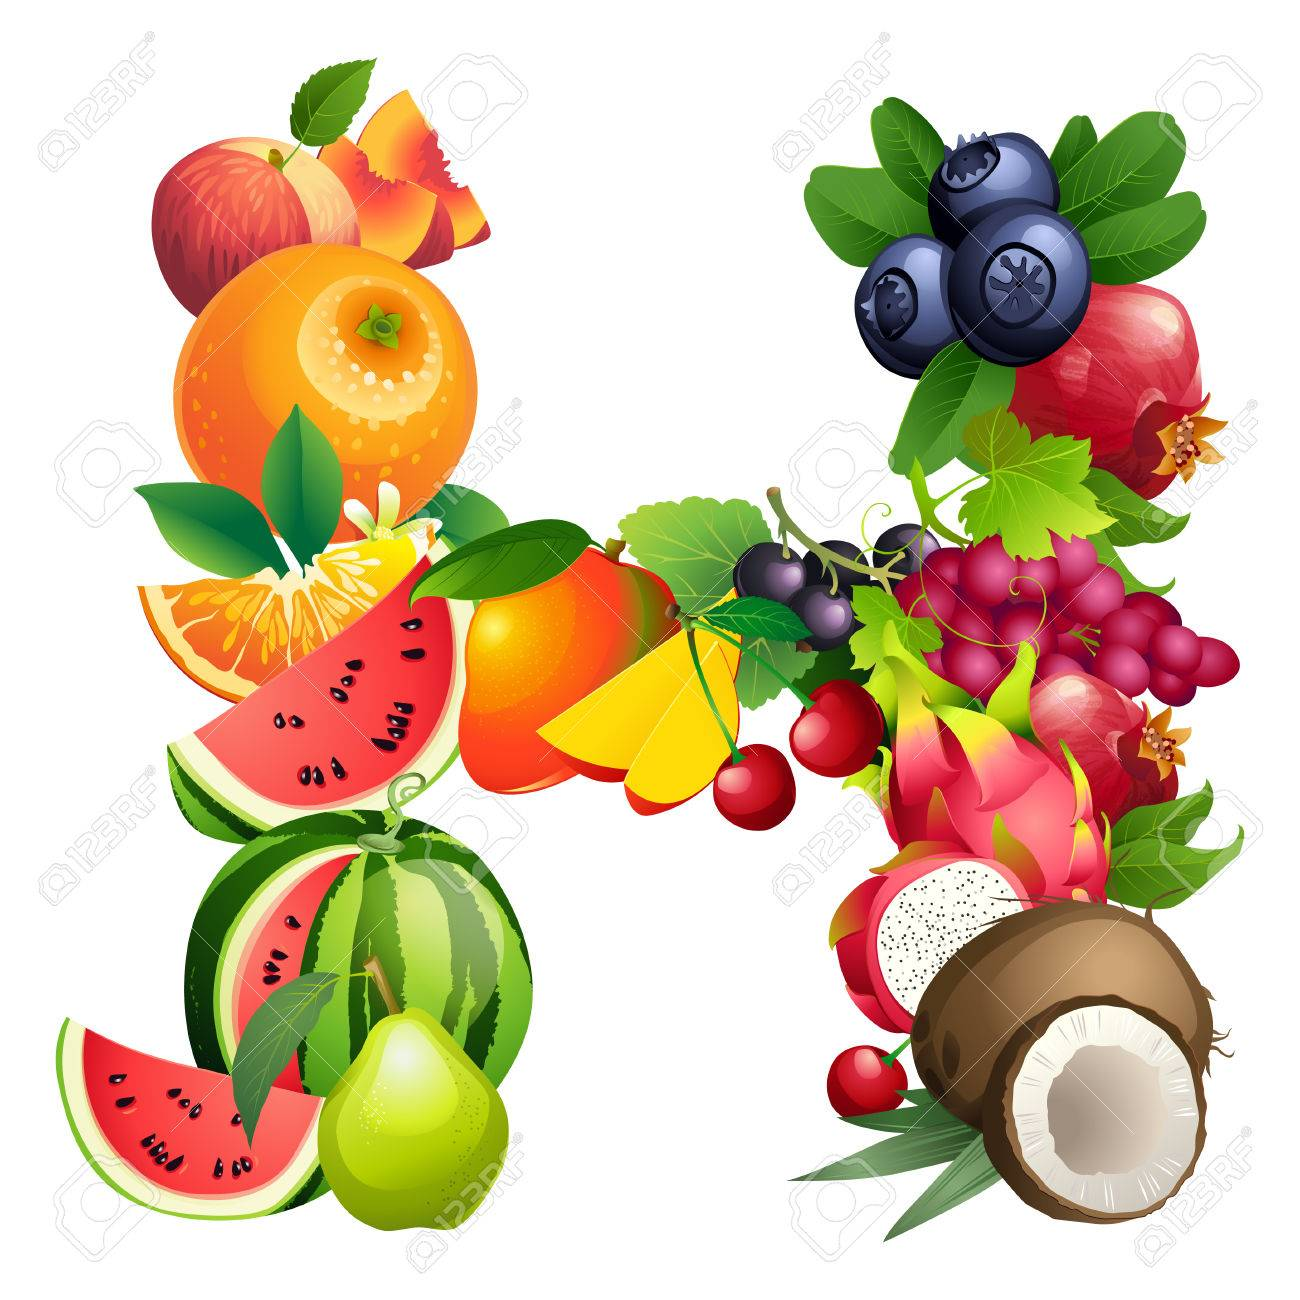 Vector Illustration Letter H Composed Of Different Fruits With